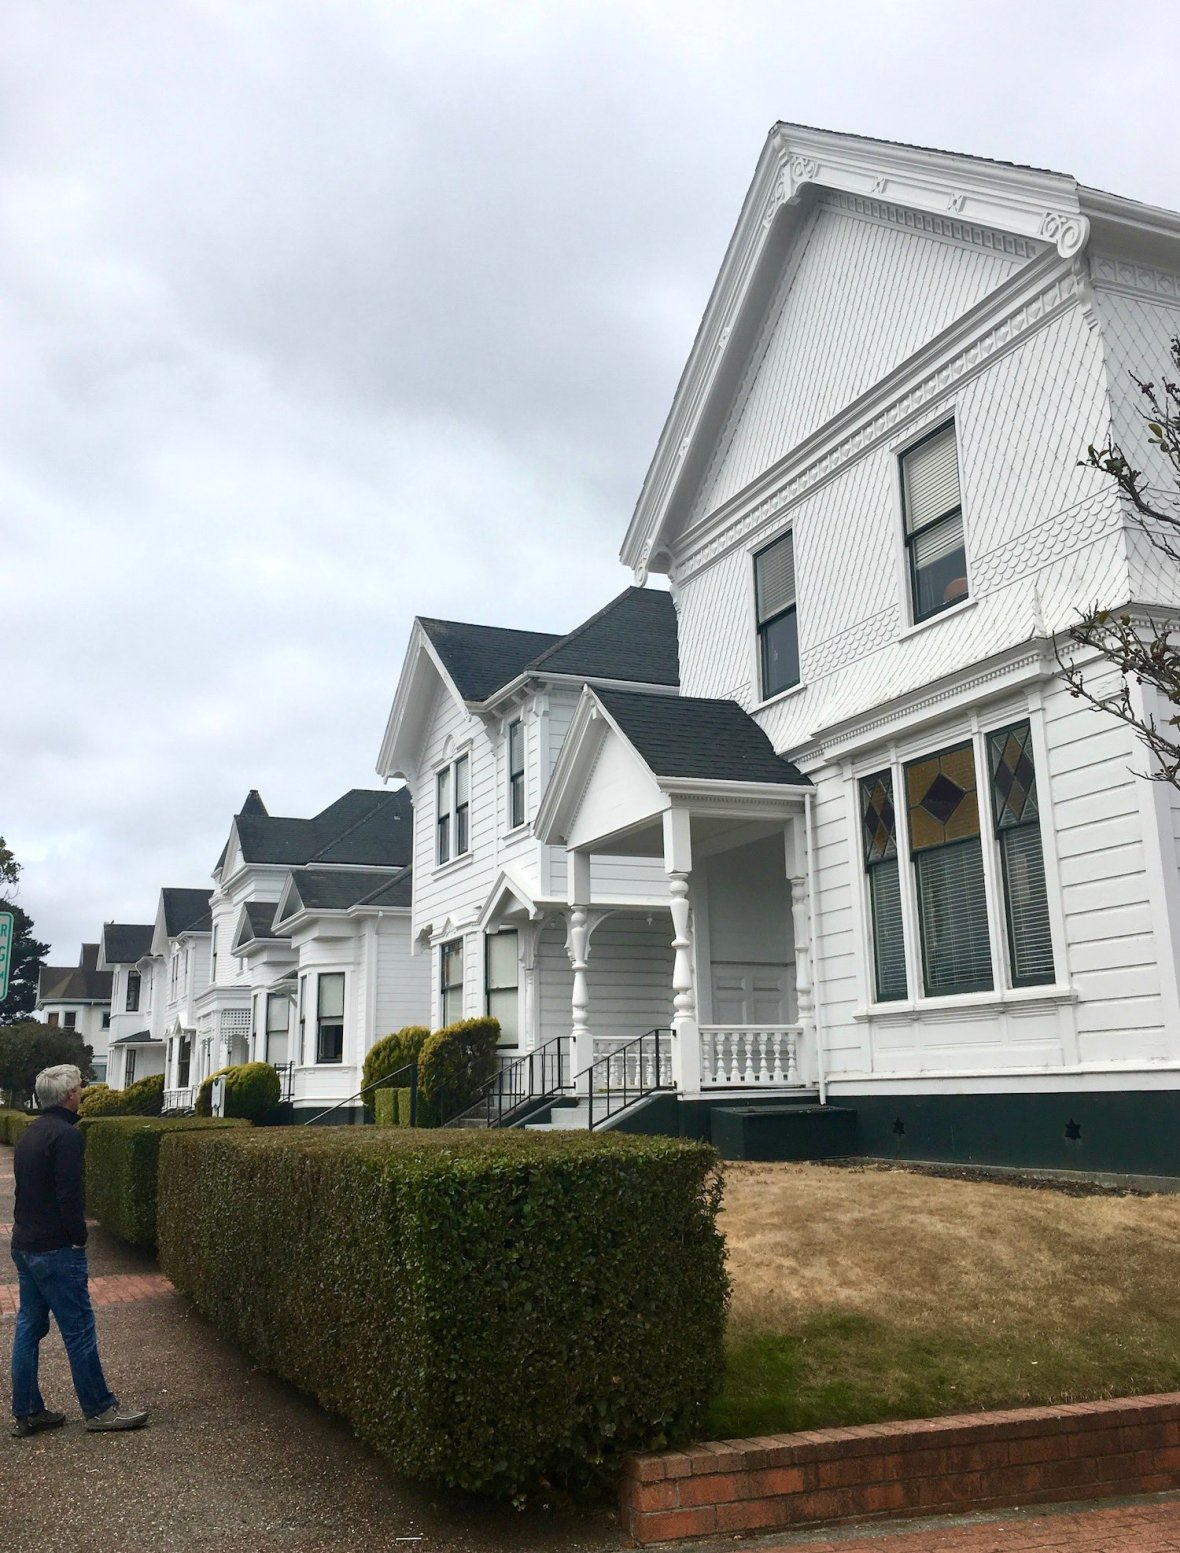 Row of white houses - Victorian homes in Eureka, California